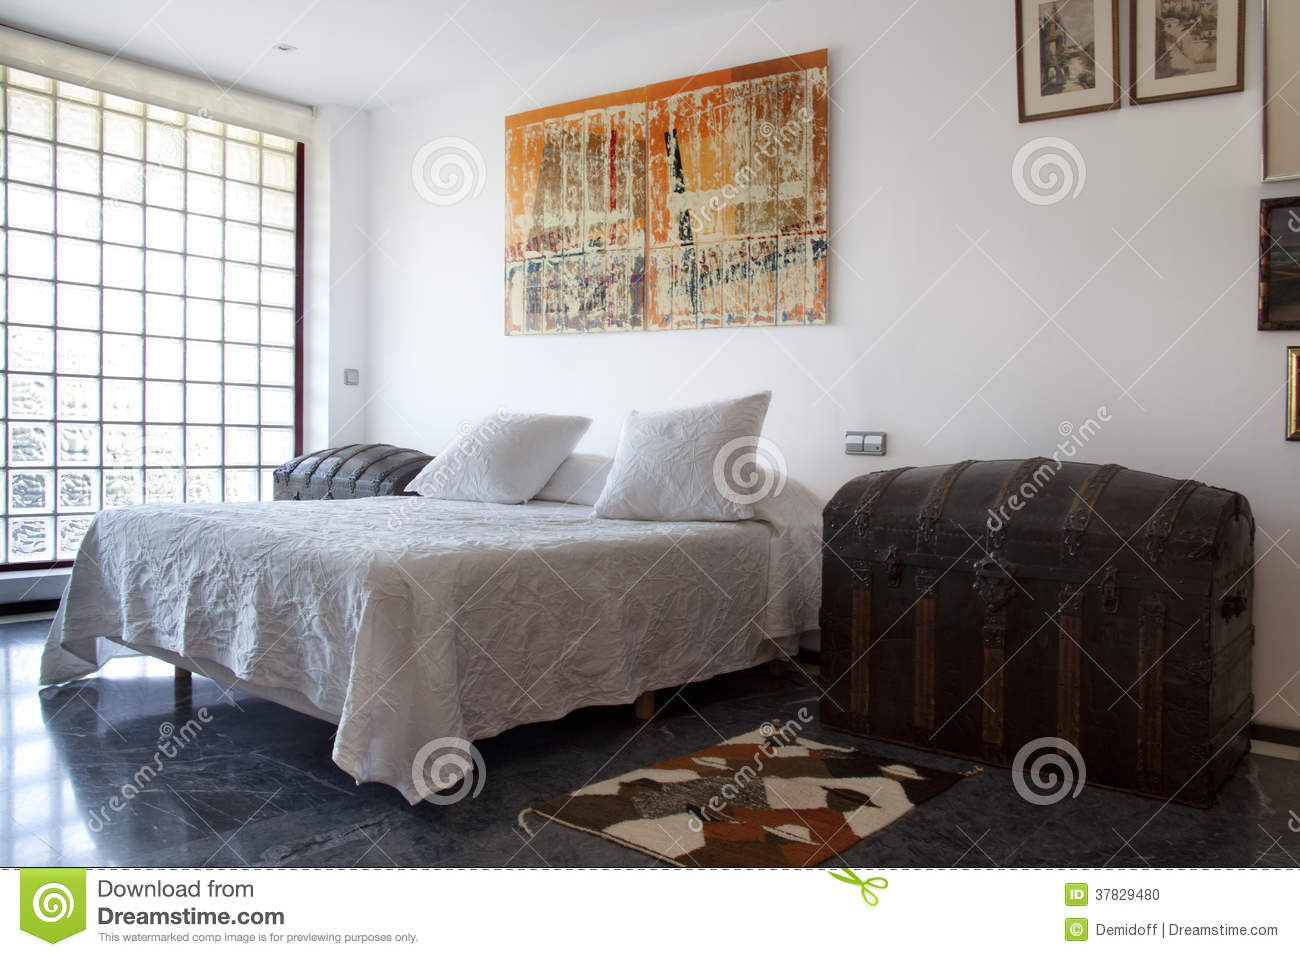 Sleeping room stock photo image 37829480 for Sleeping room interior design